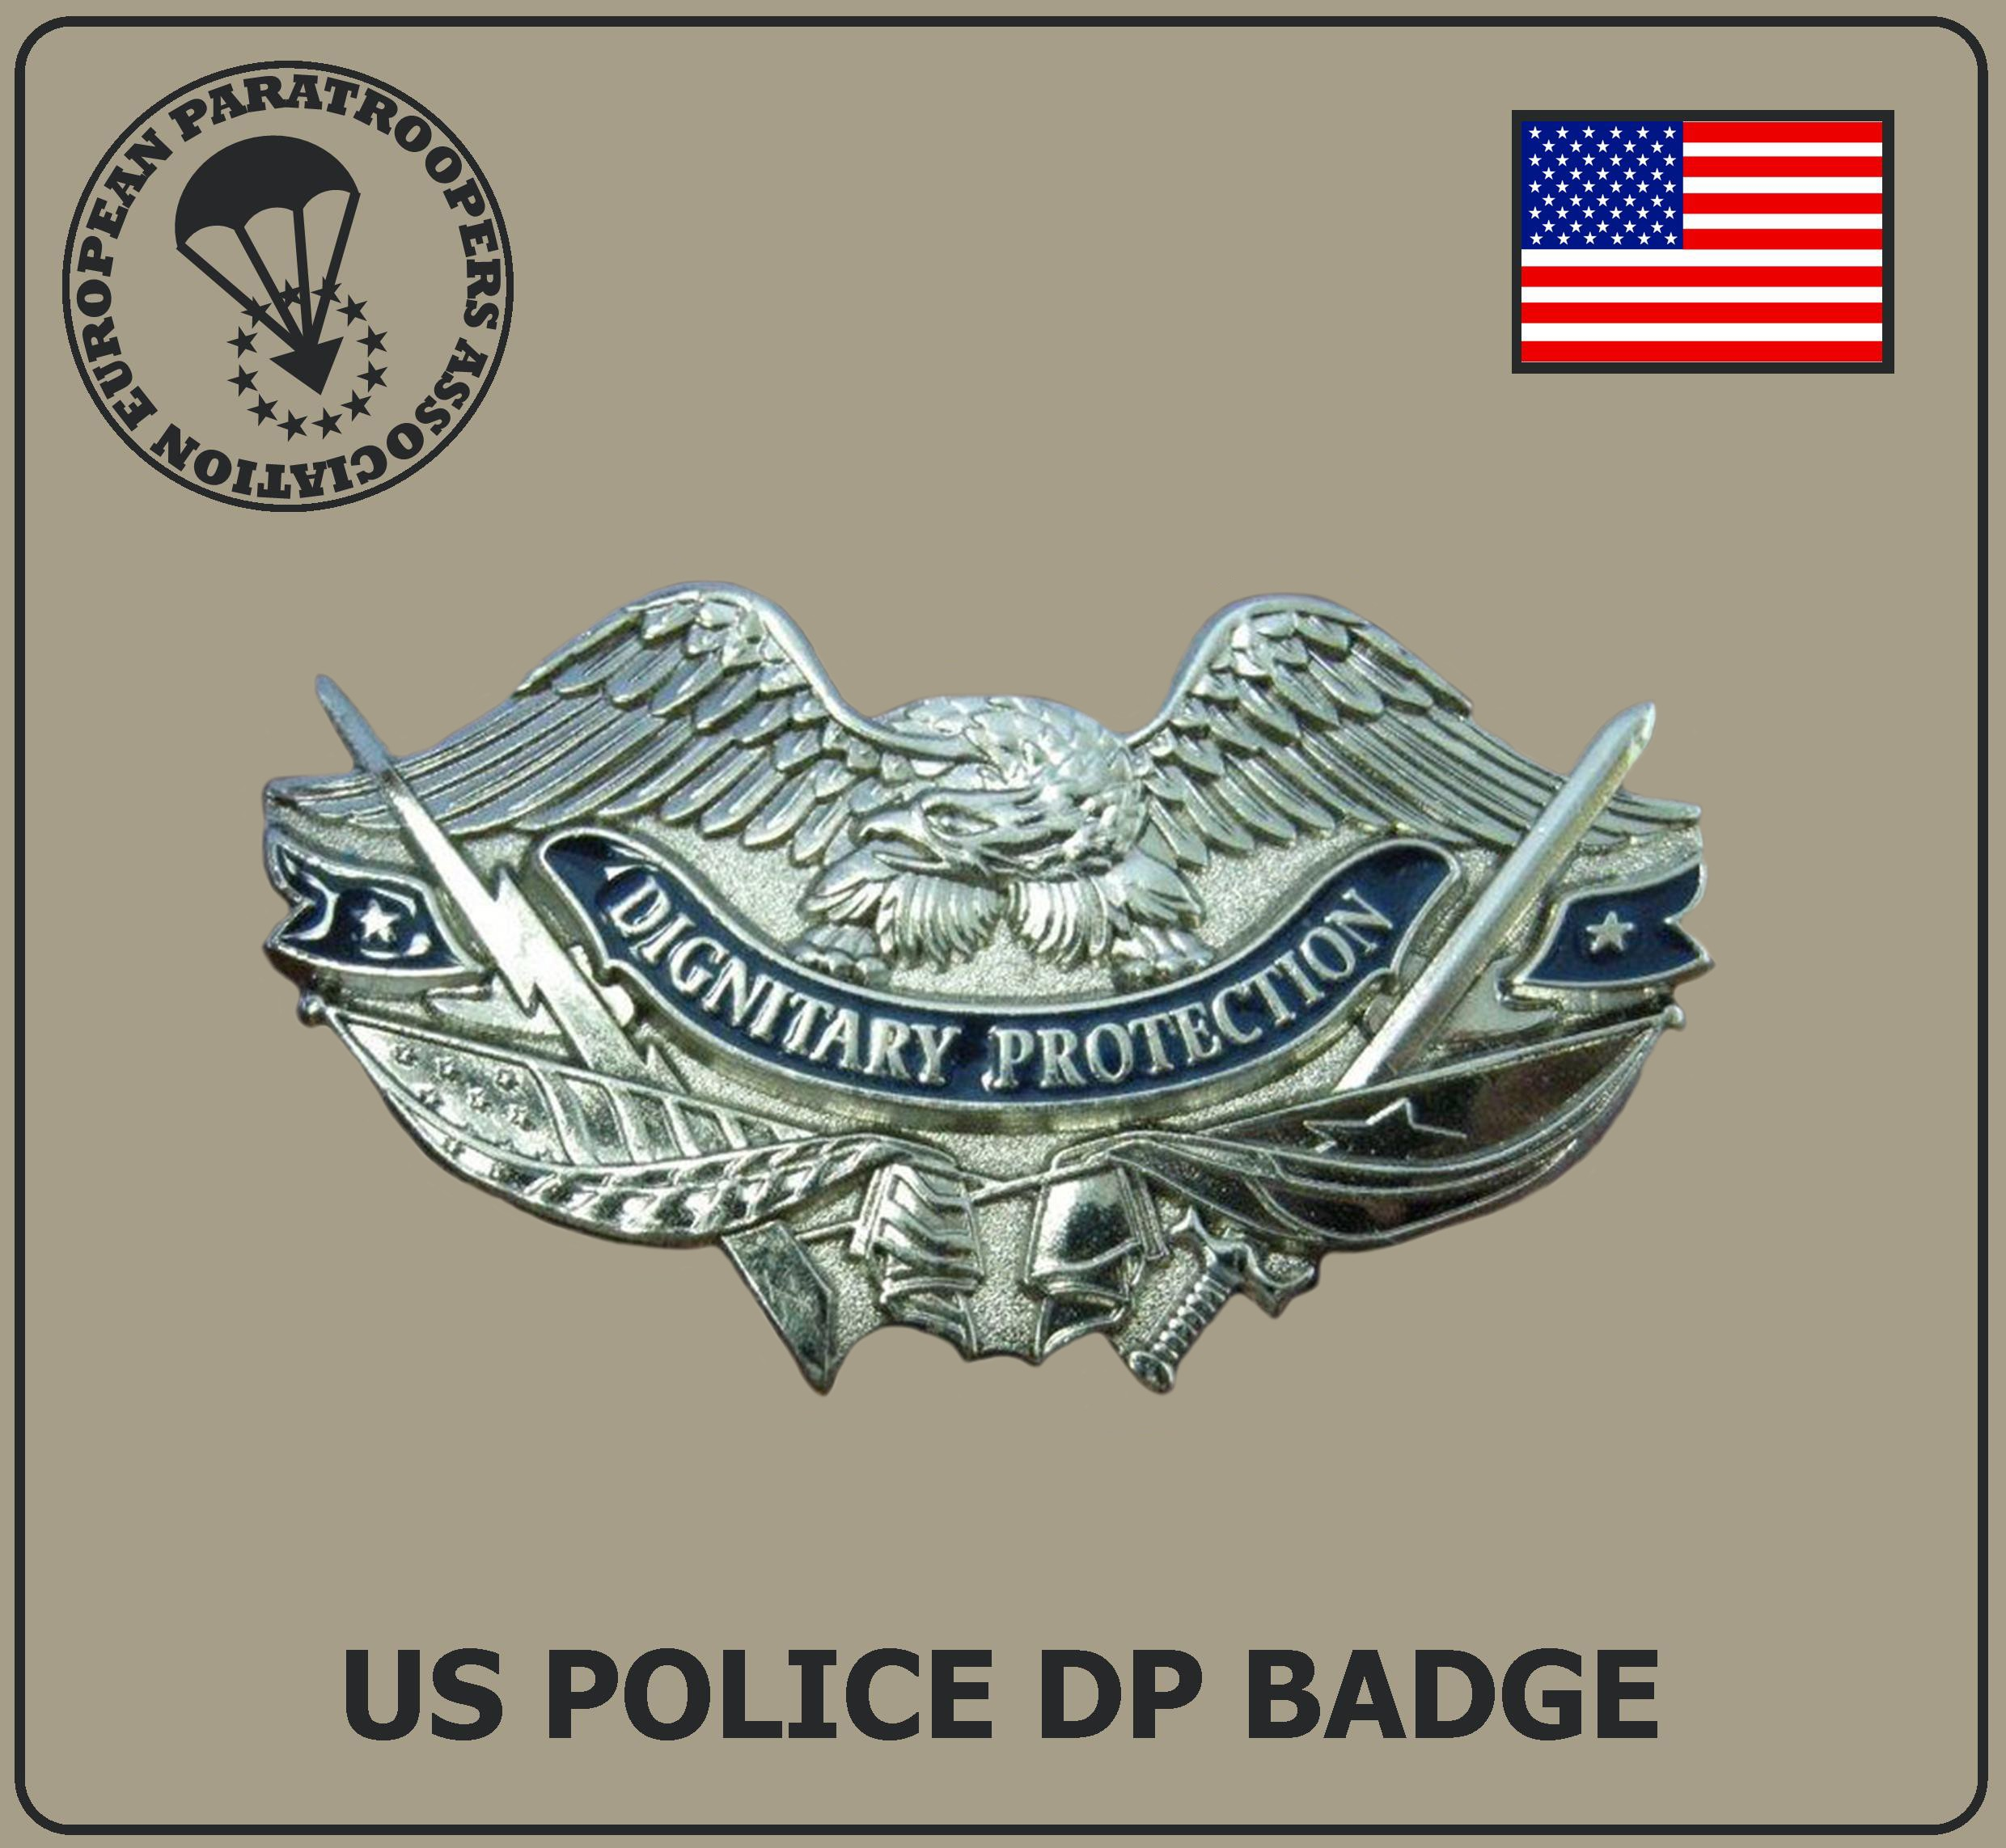 US POLICE DP BADGE